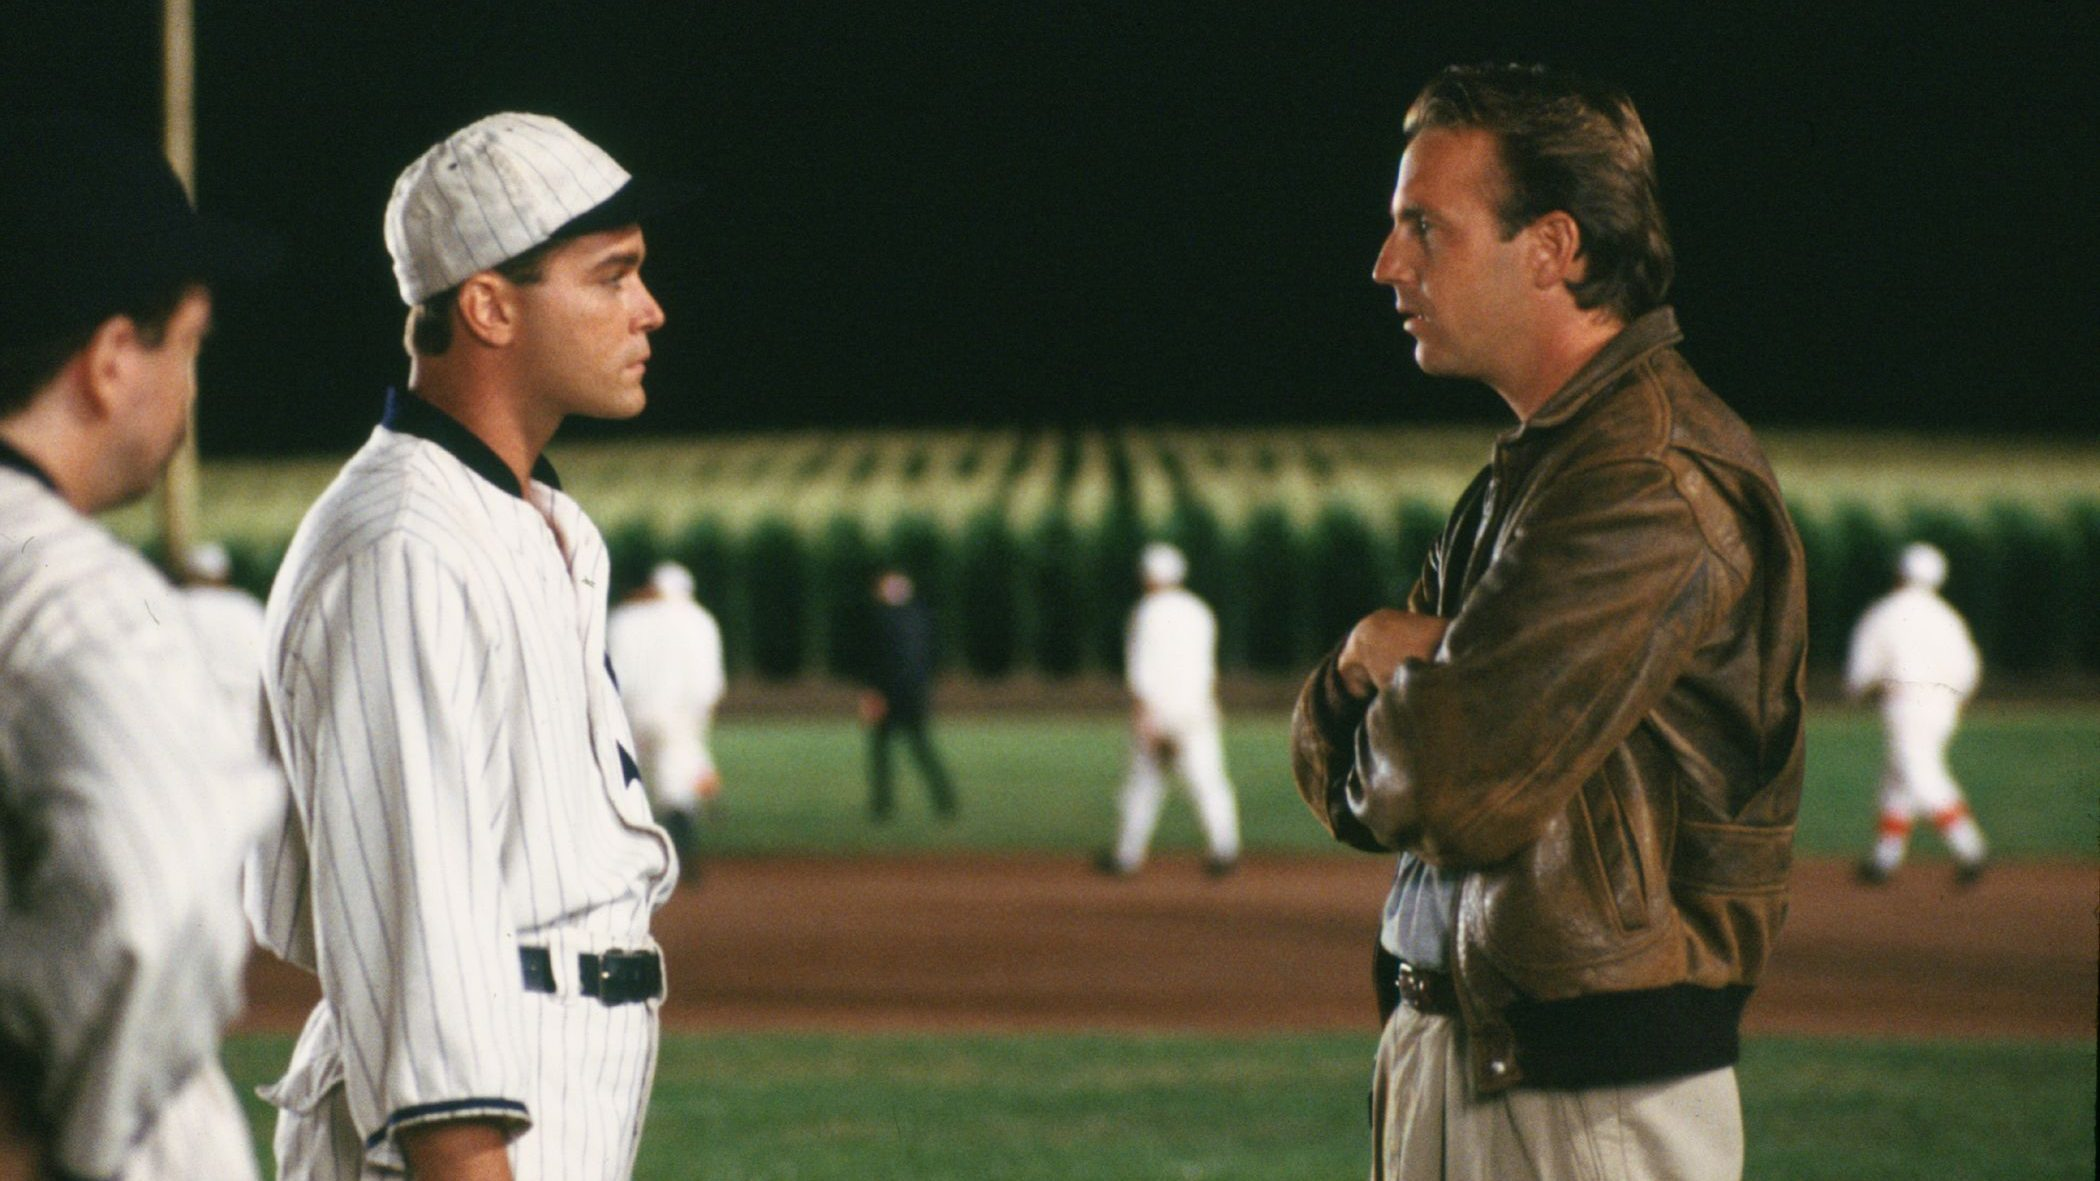 field-of-dreams-movie-e1565284011851